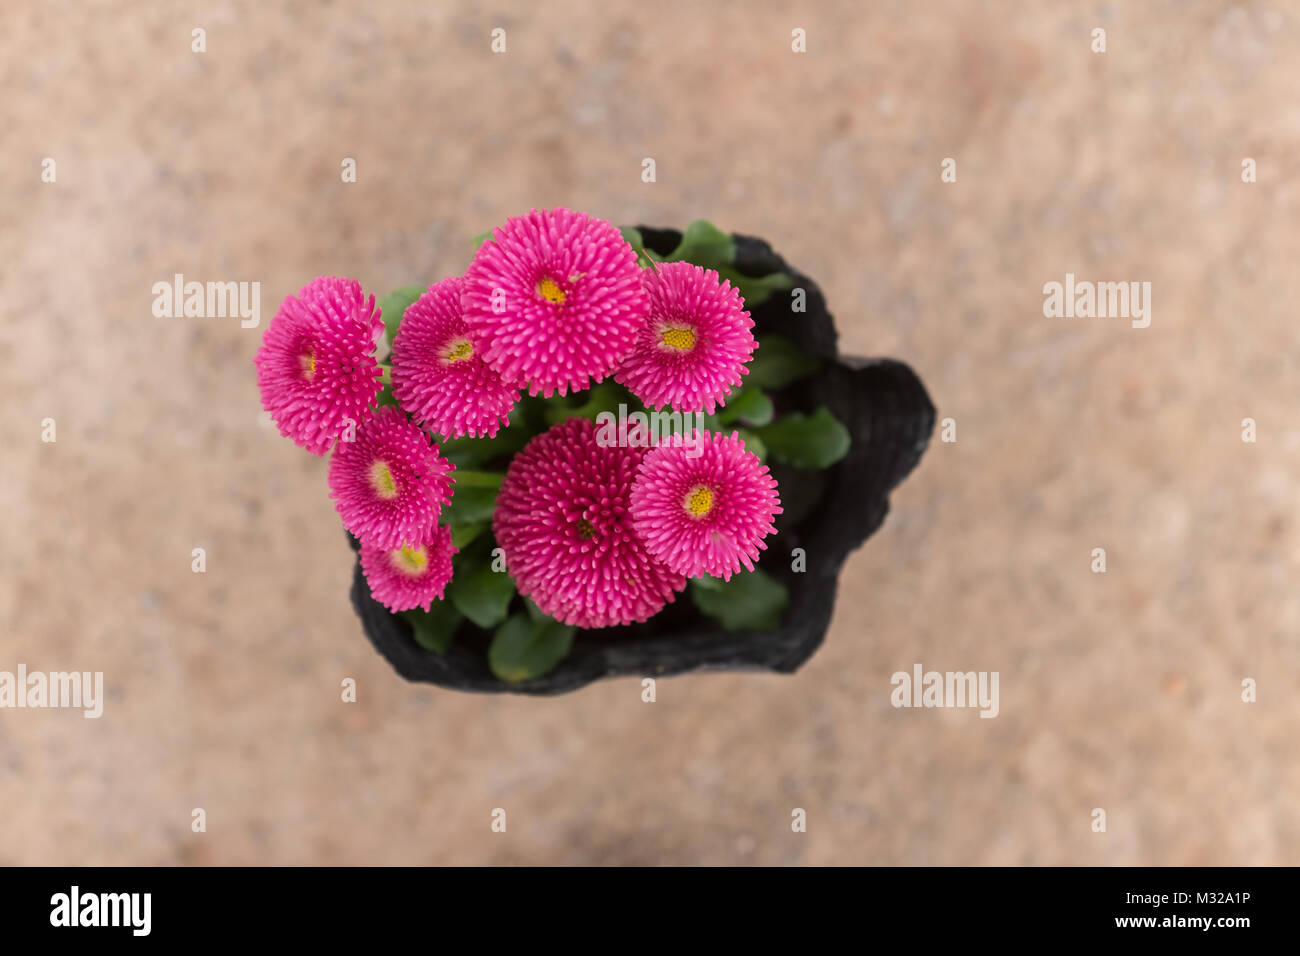 Flowers and plants - Stock Image